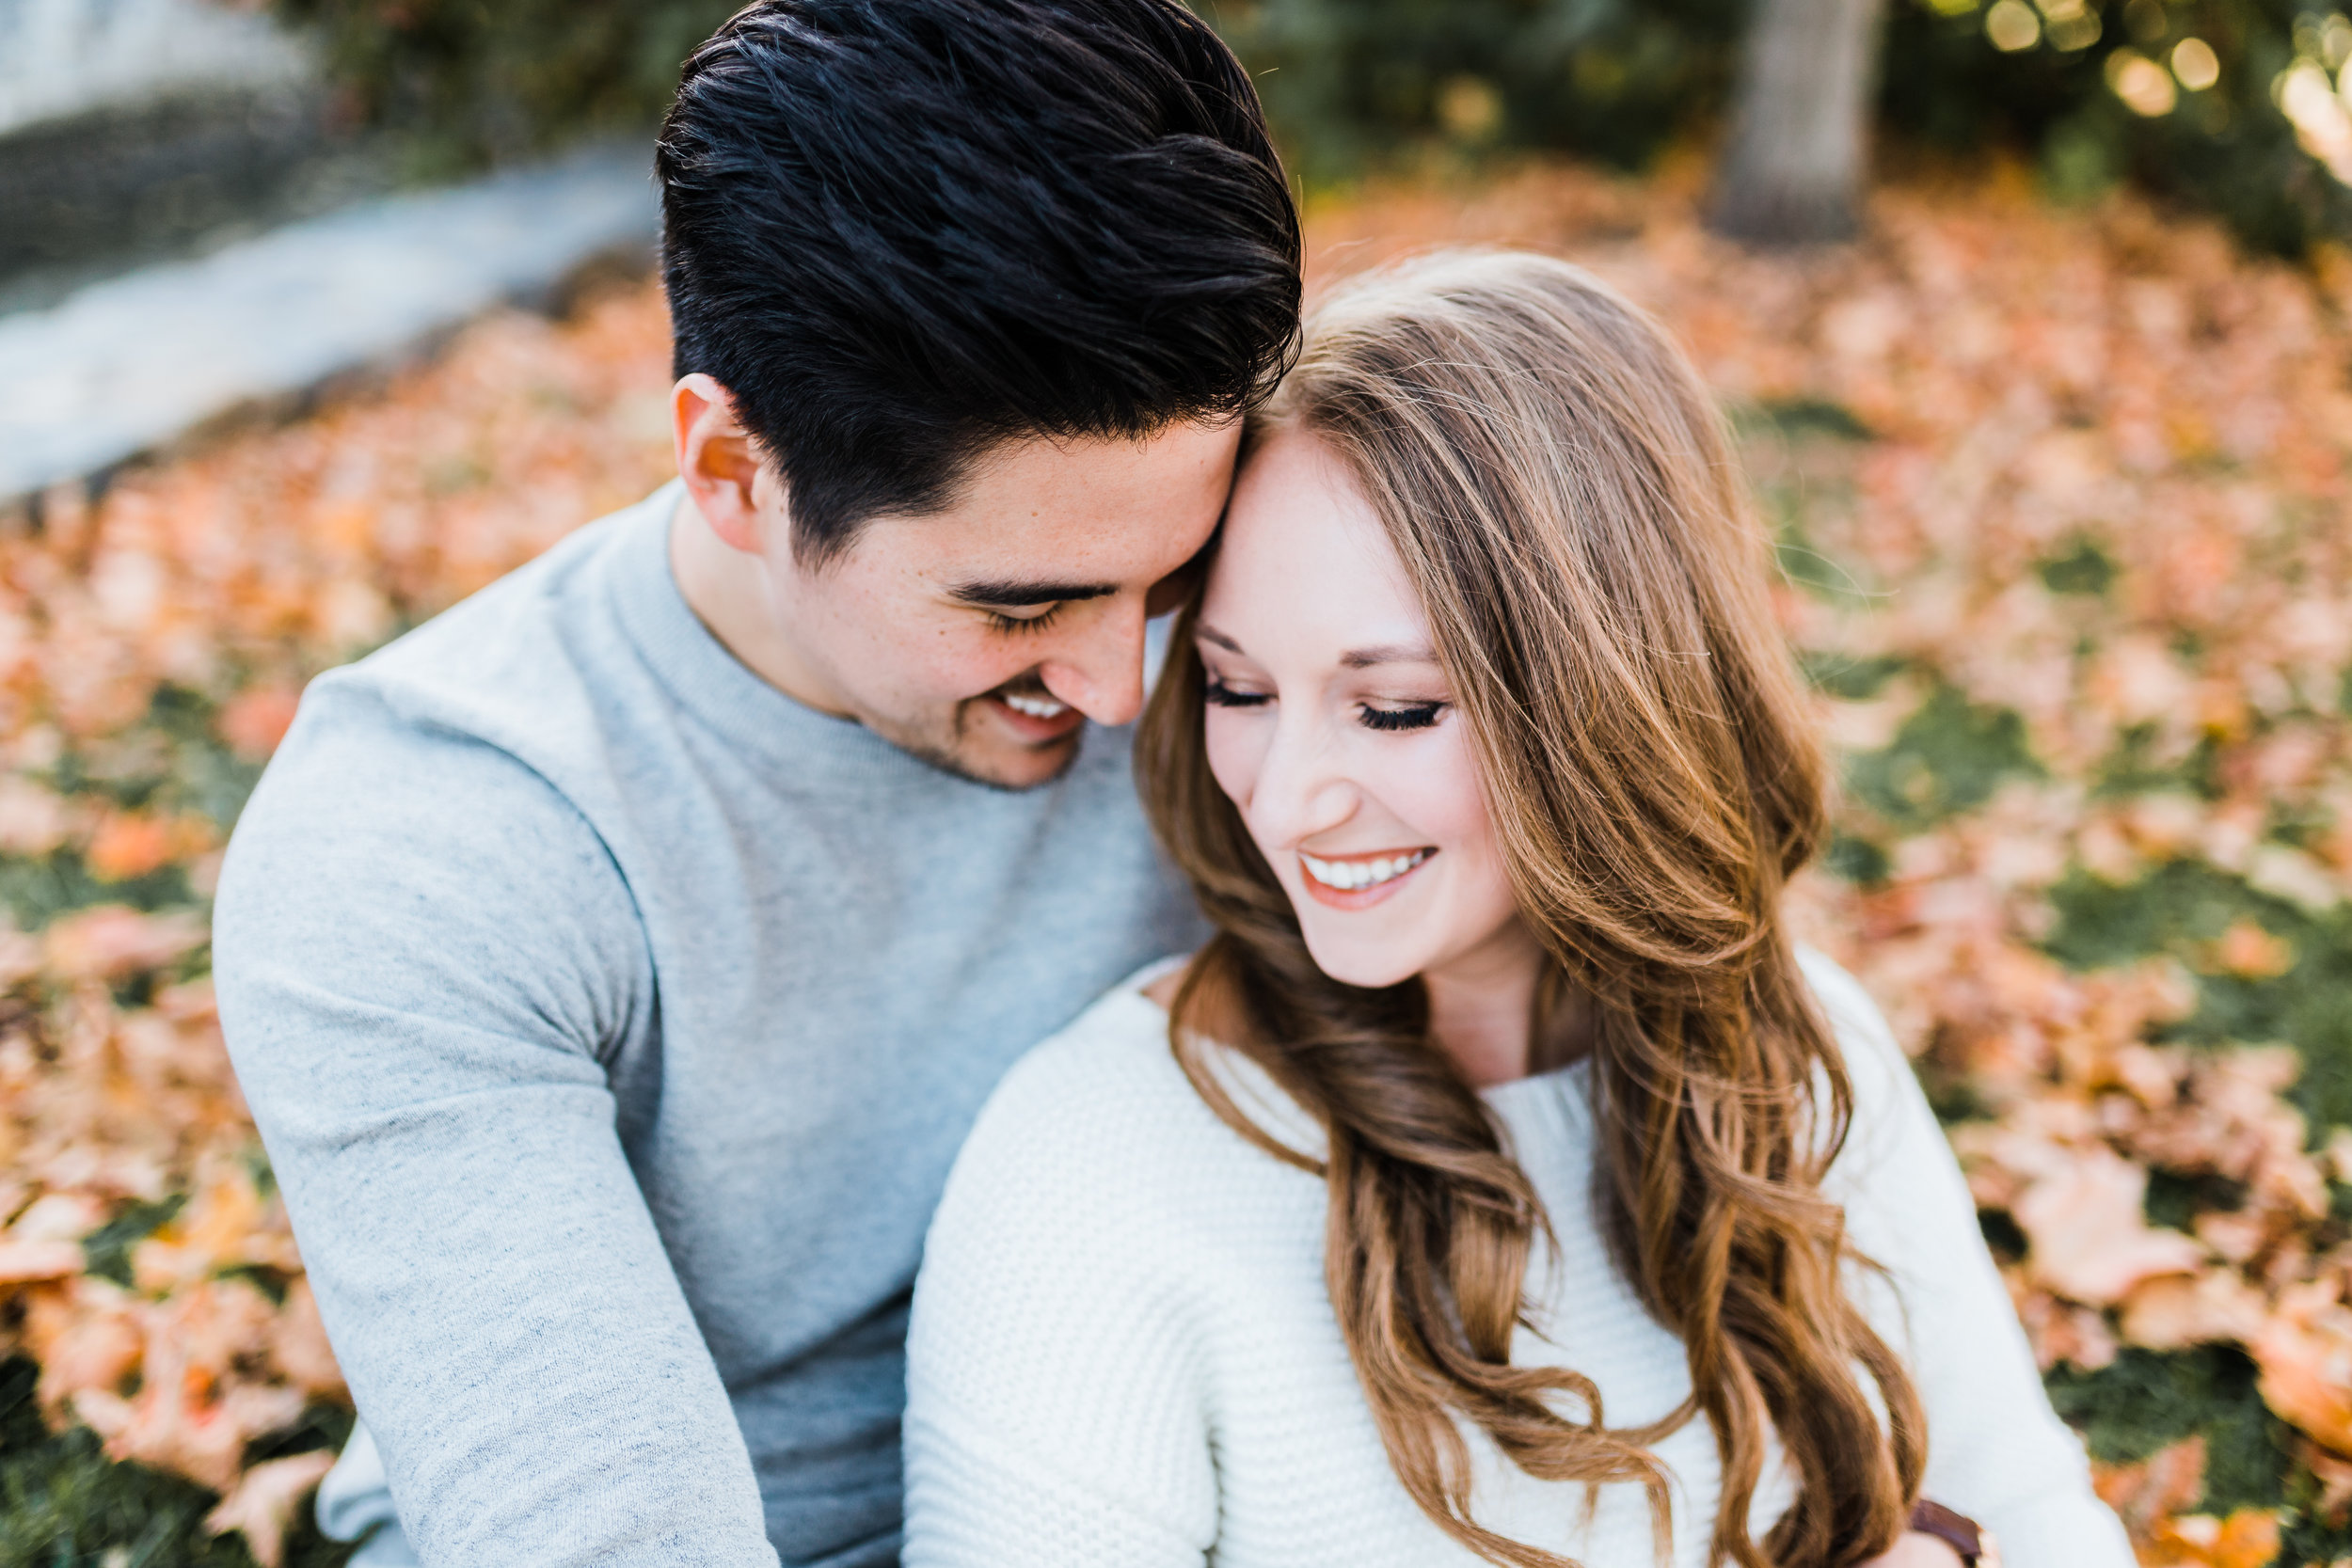 Meet your wedding photographer and cinematographer, Jimmy and Shelby! - Maryland based and available for travel